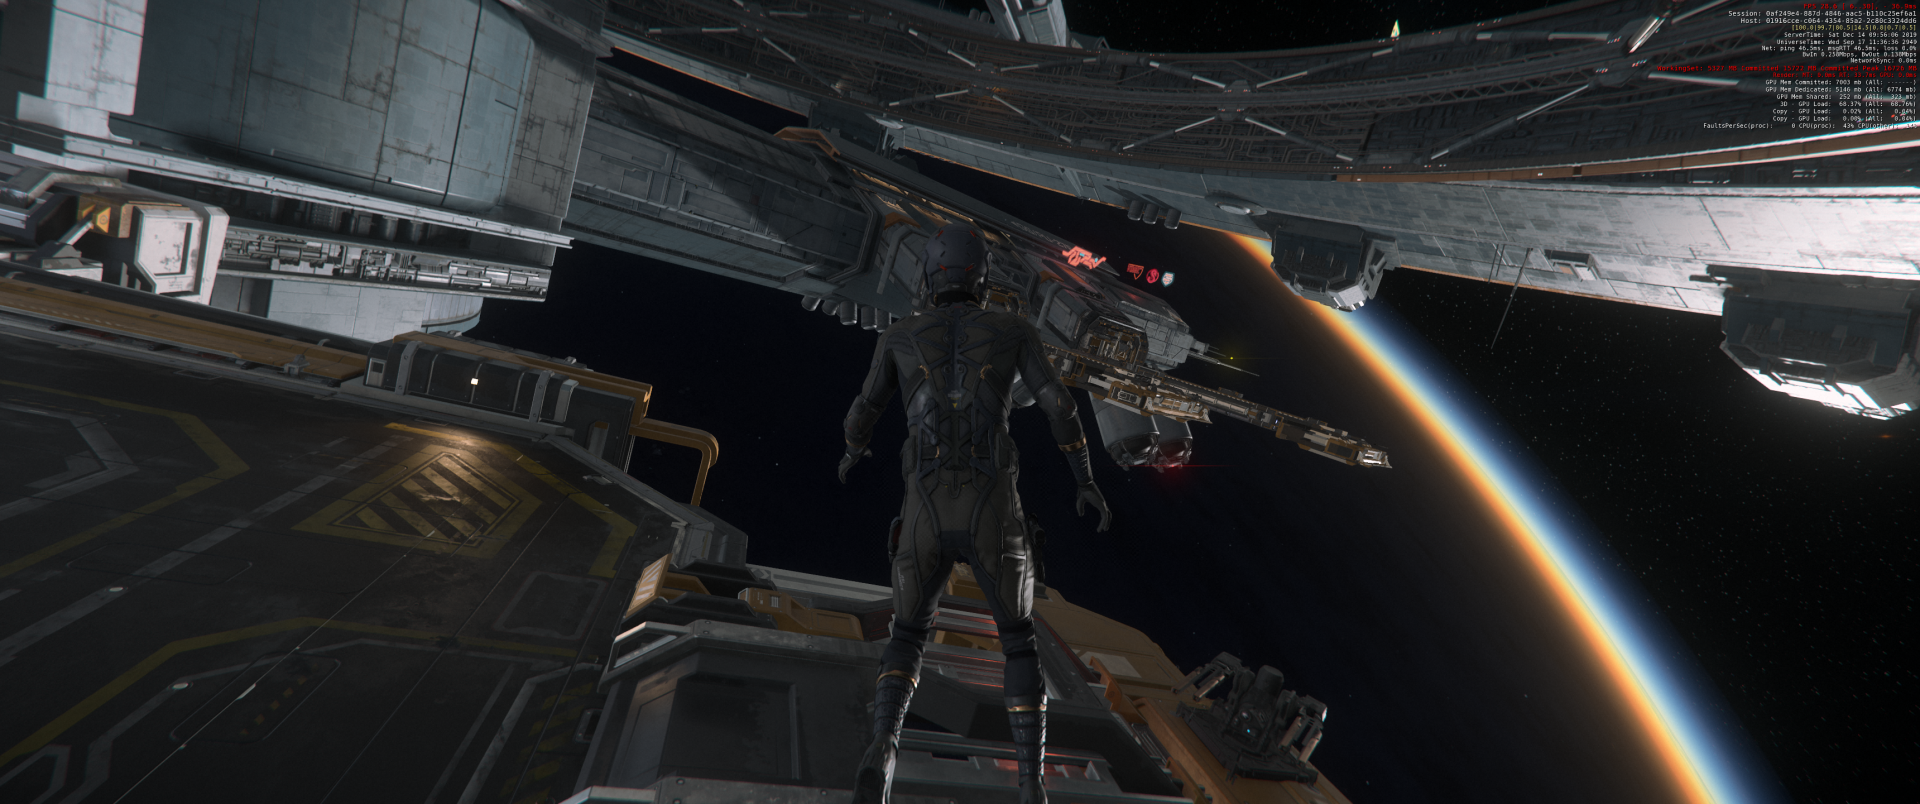 Squadron 42 - Star Citizen Screenshot 2019.12.14 - 10.55.05.70.png